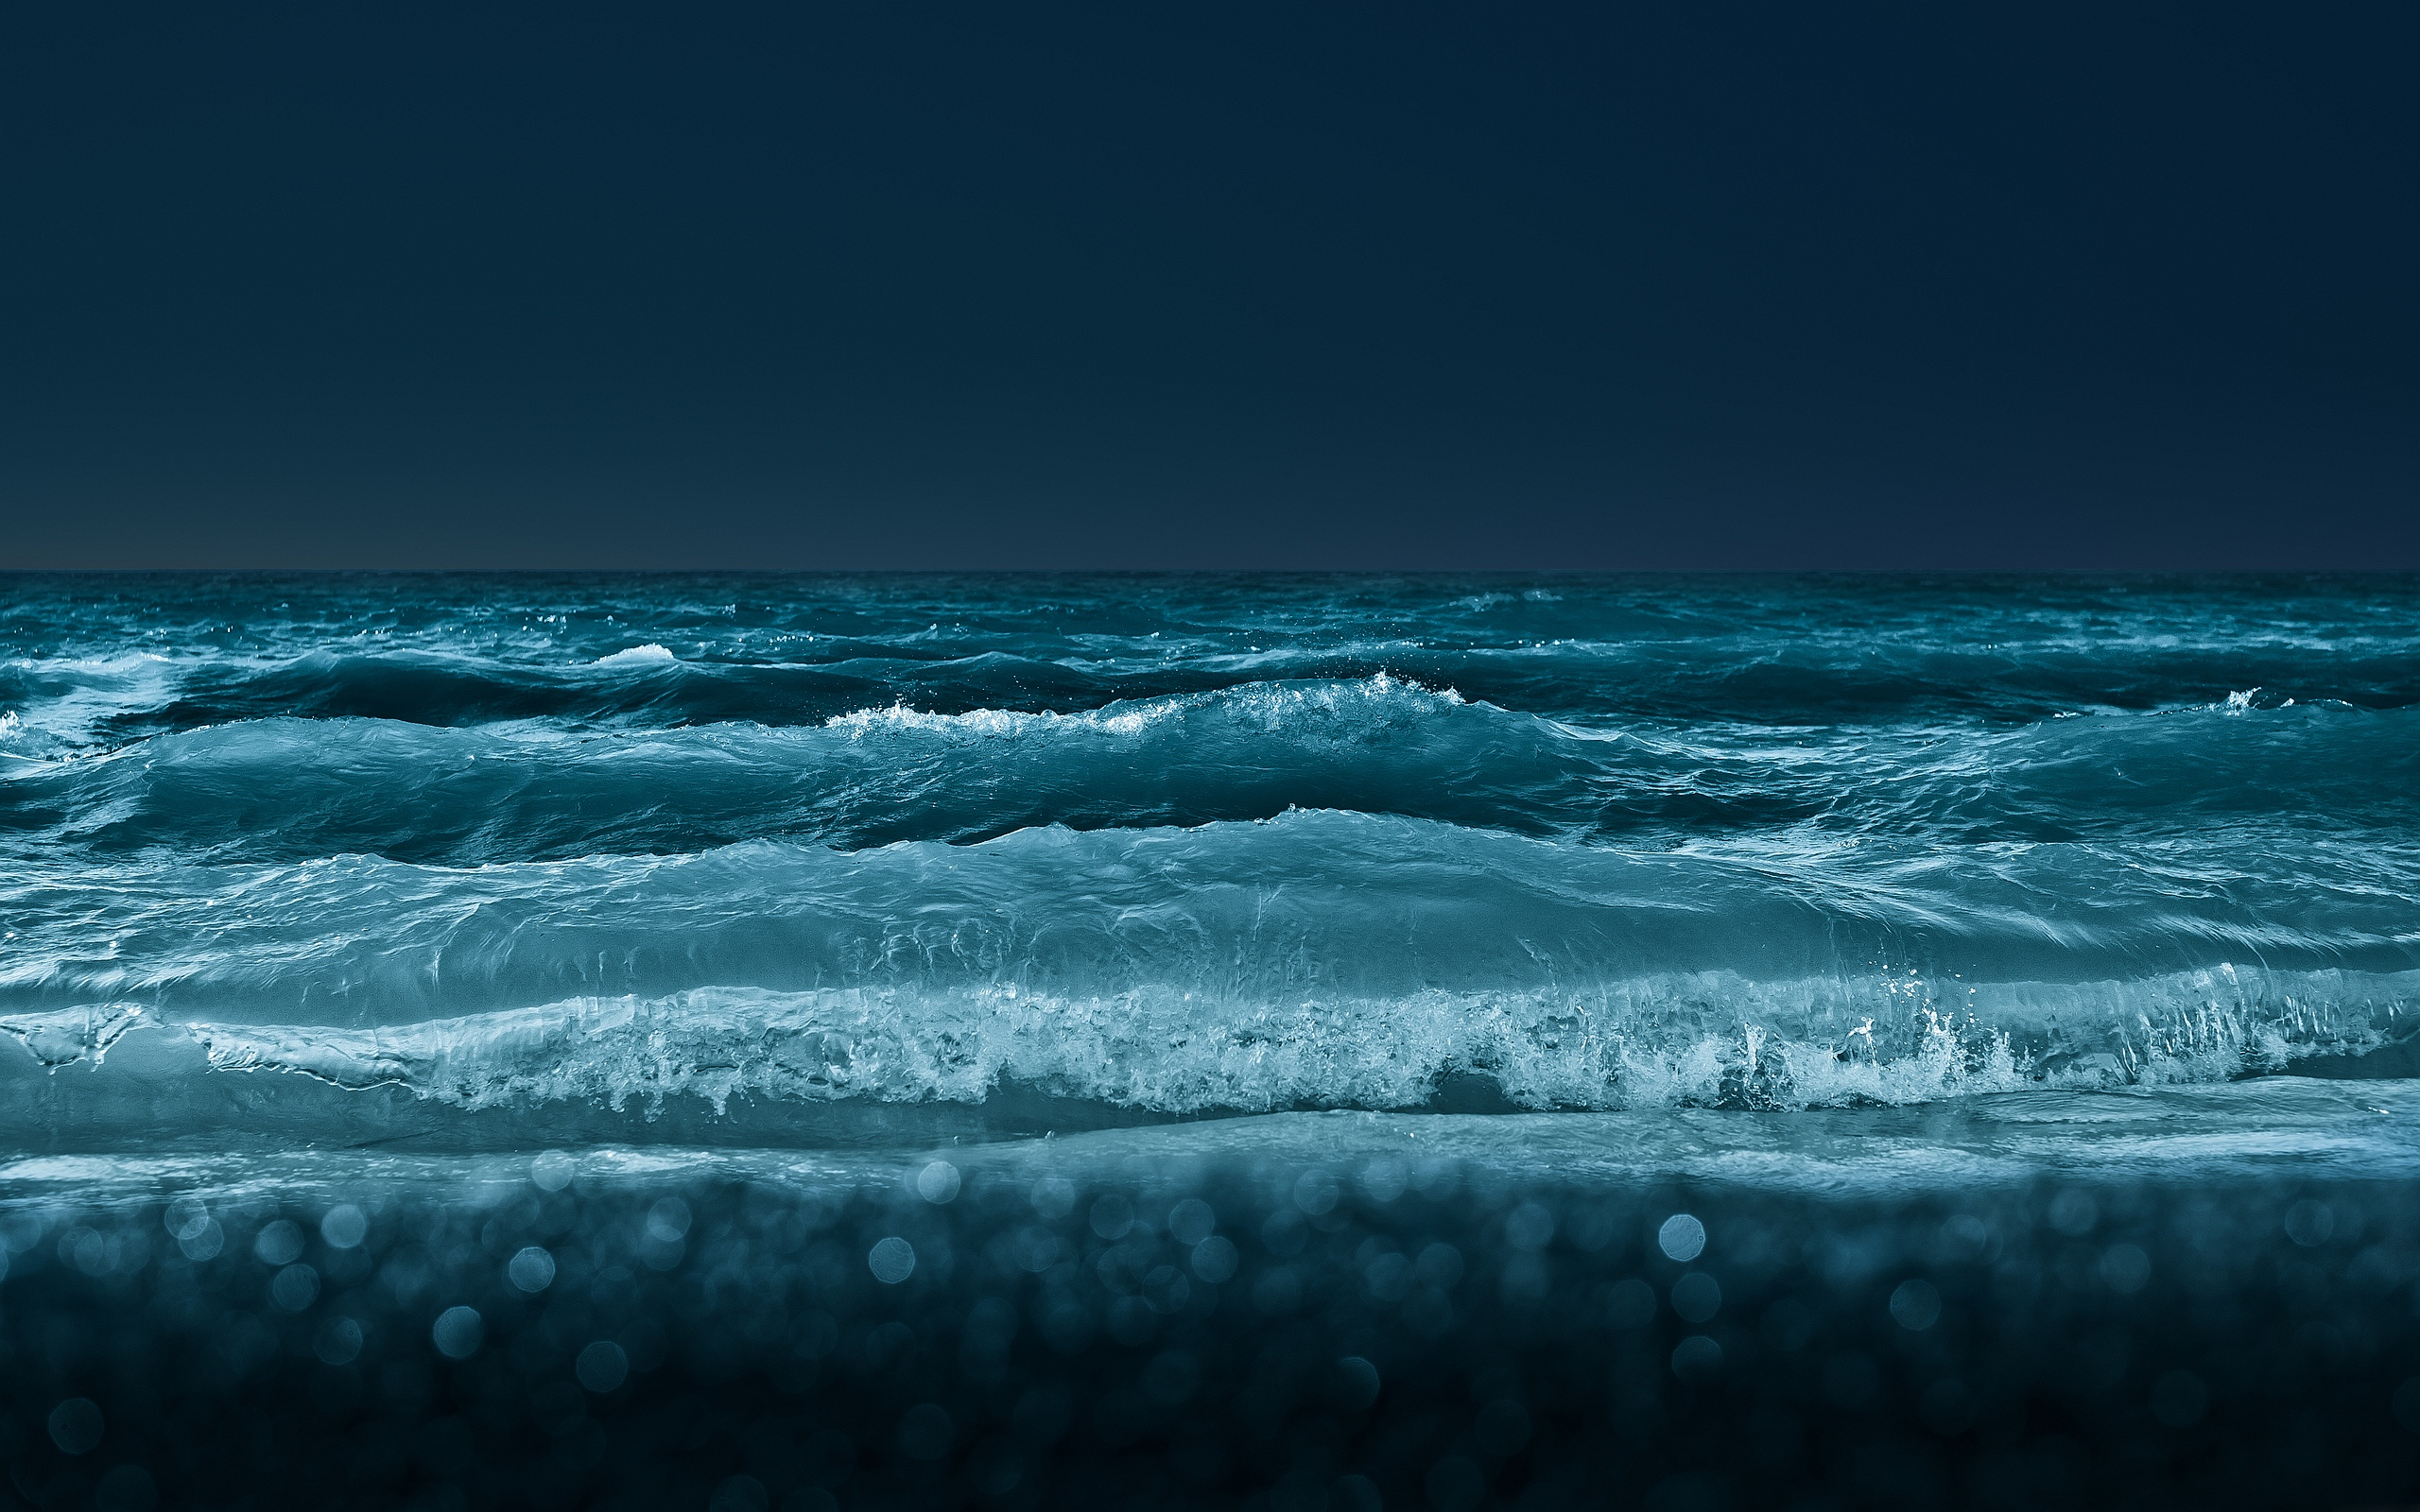 Ocean Waves at Night